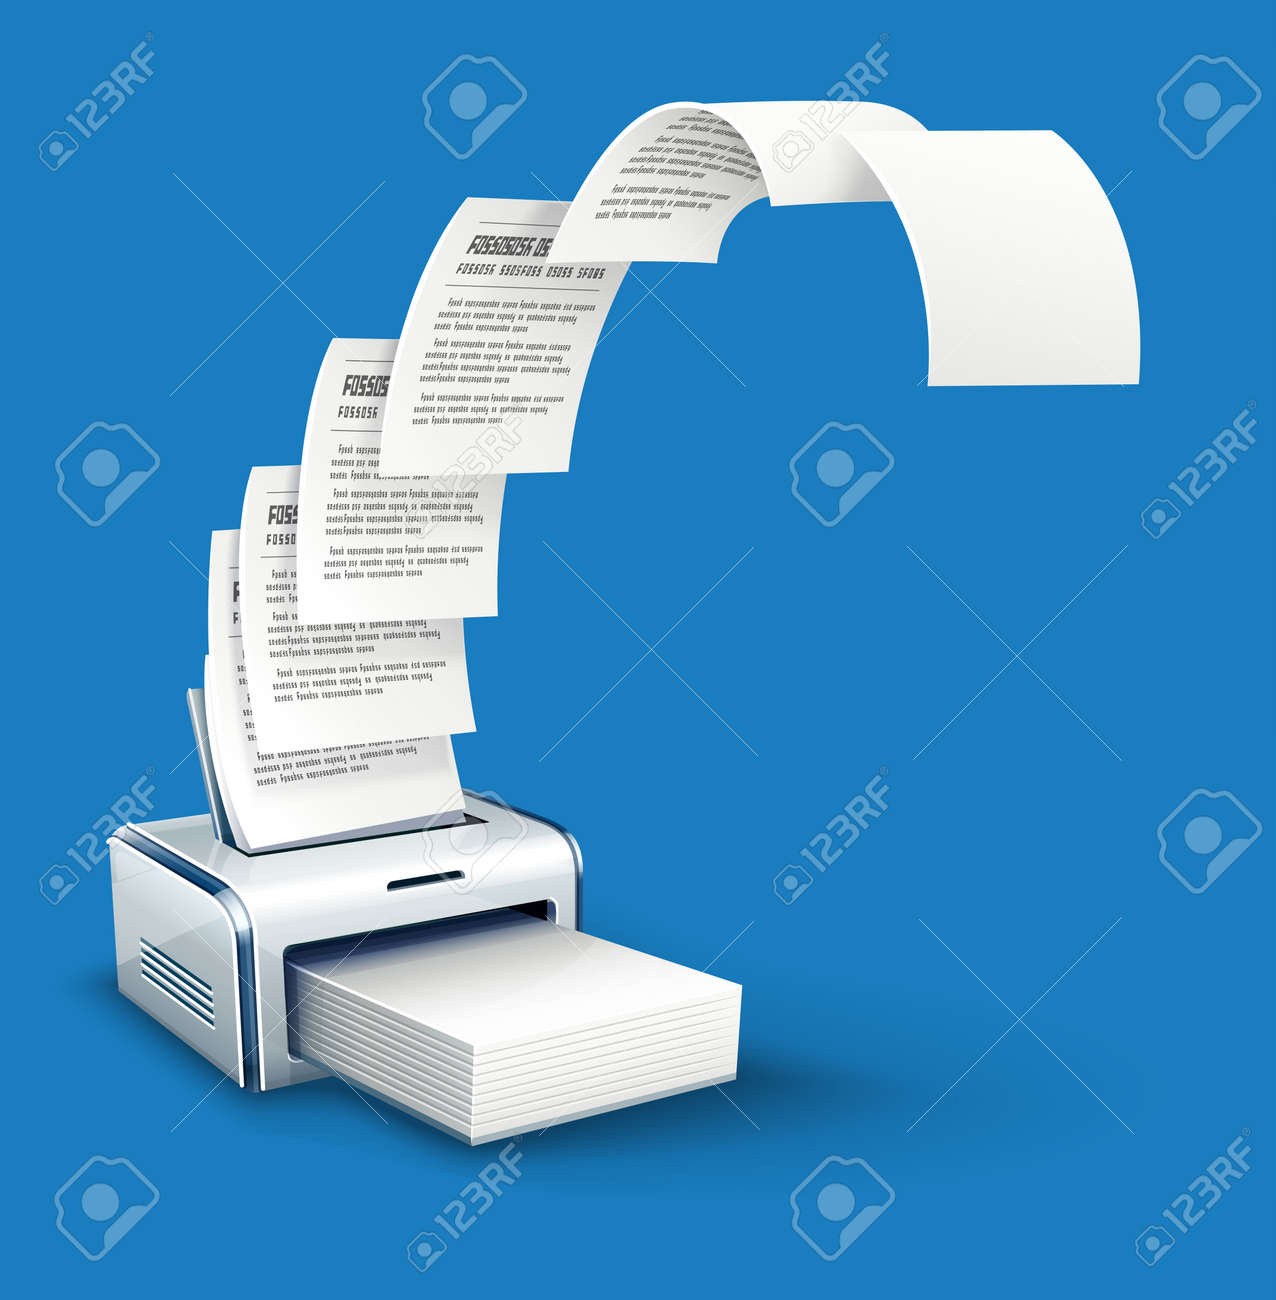 Printer printing copies of text to paper with copyspace - 54795604